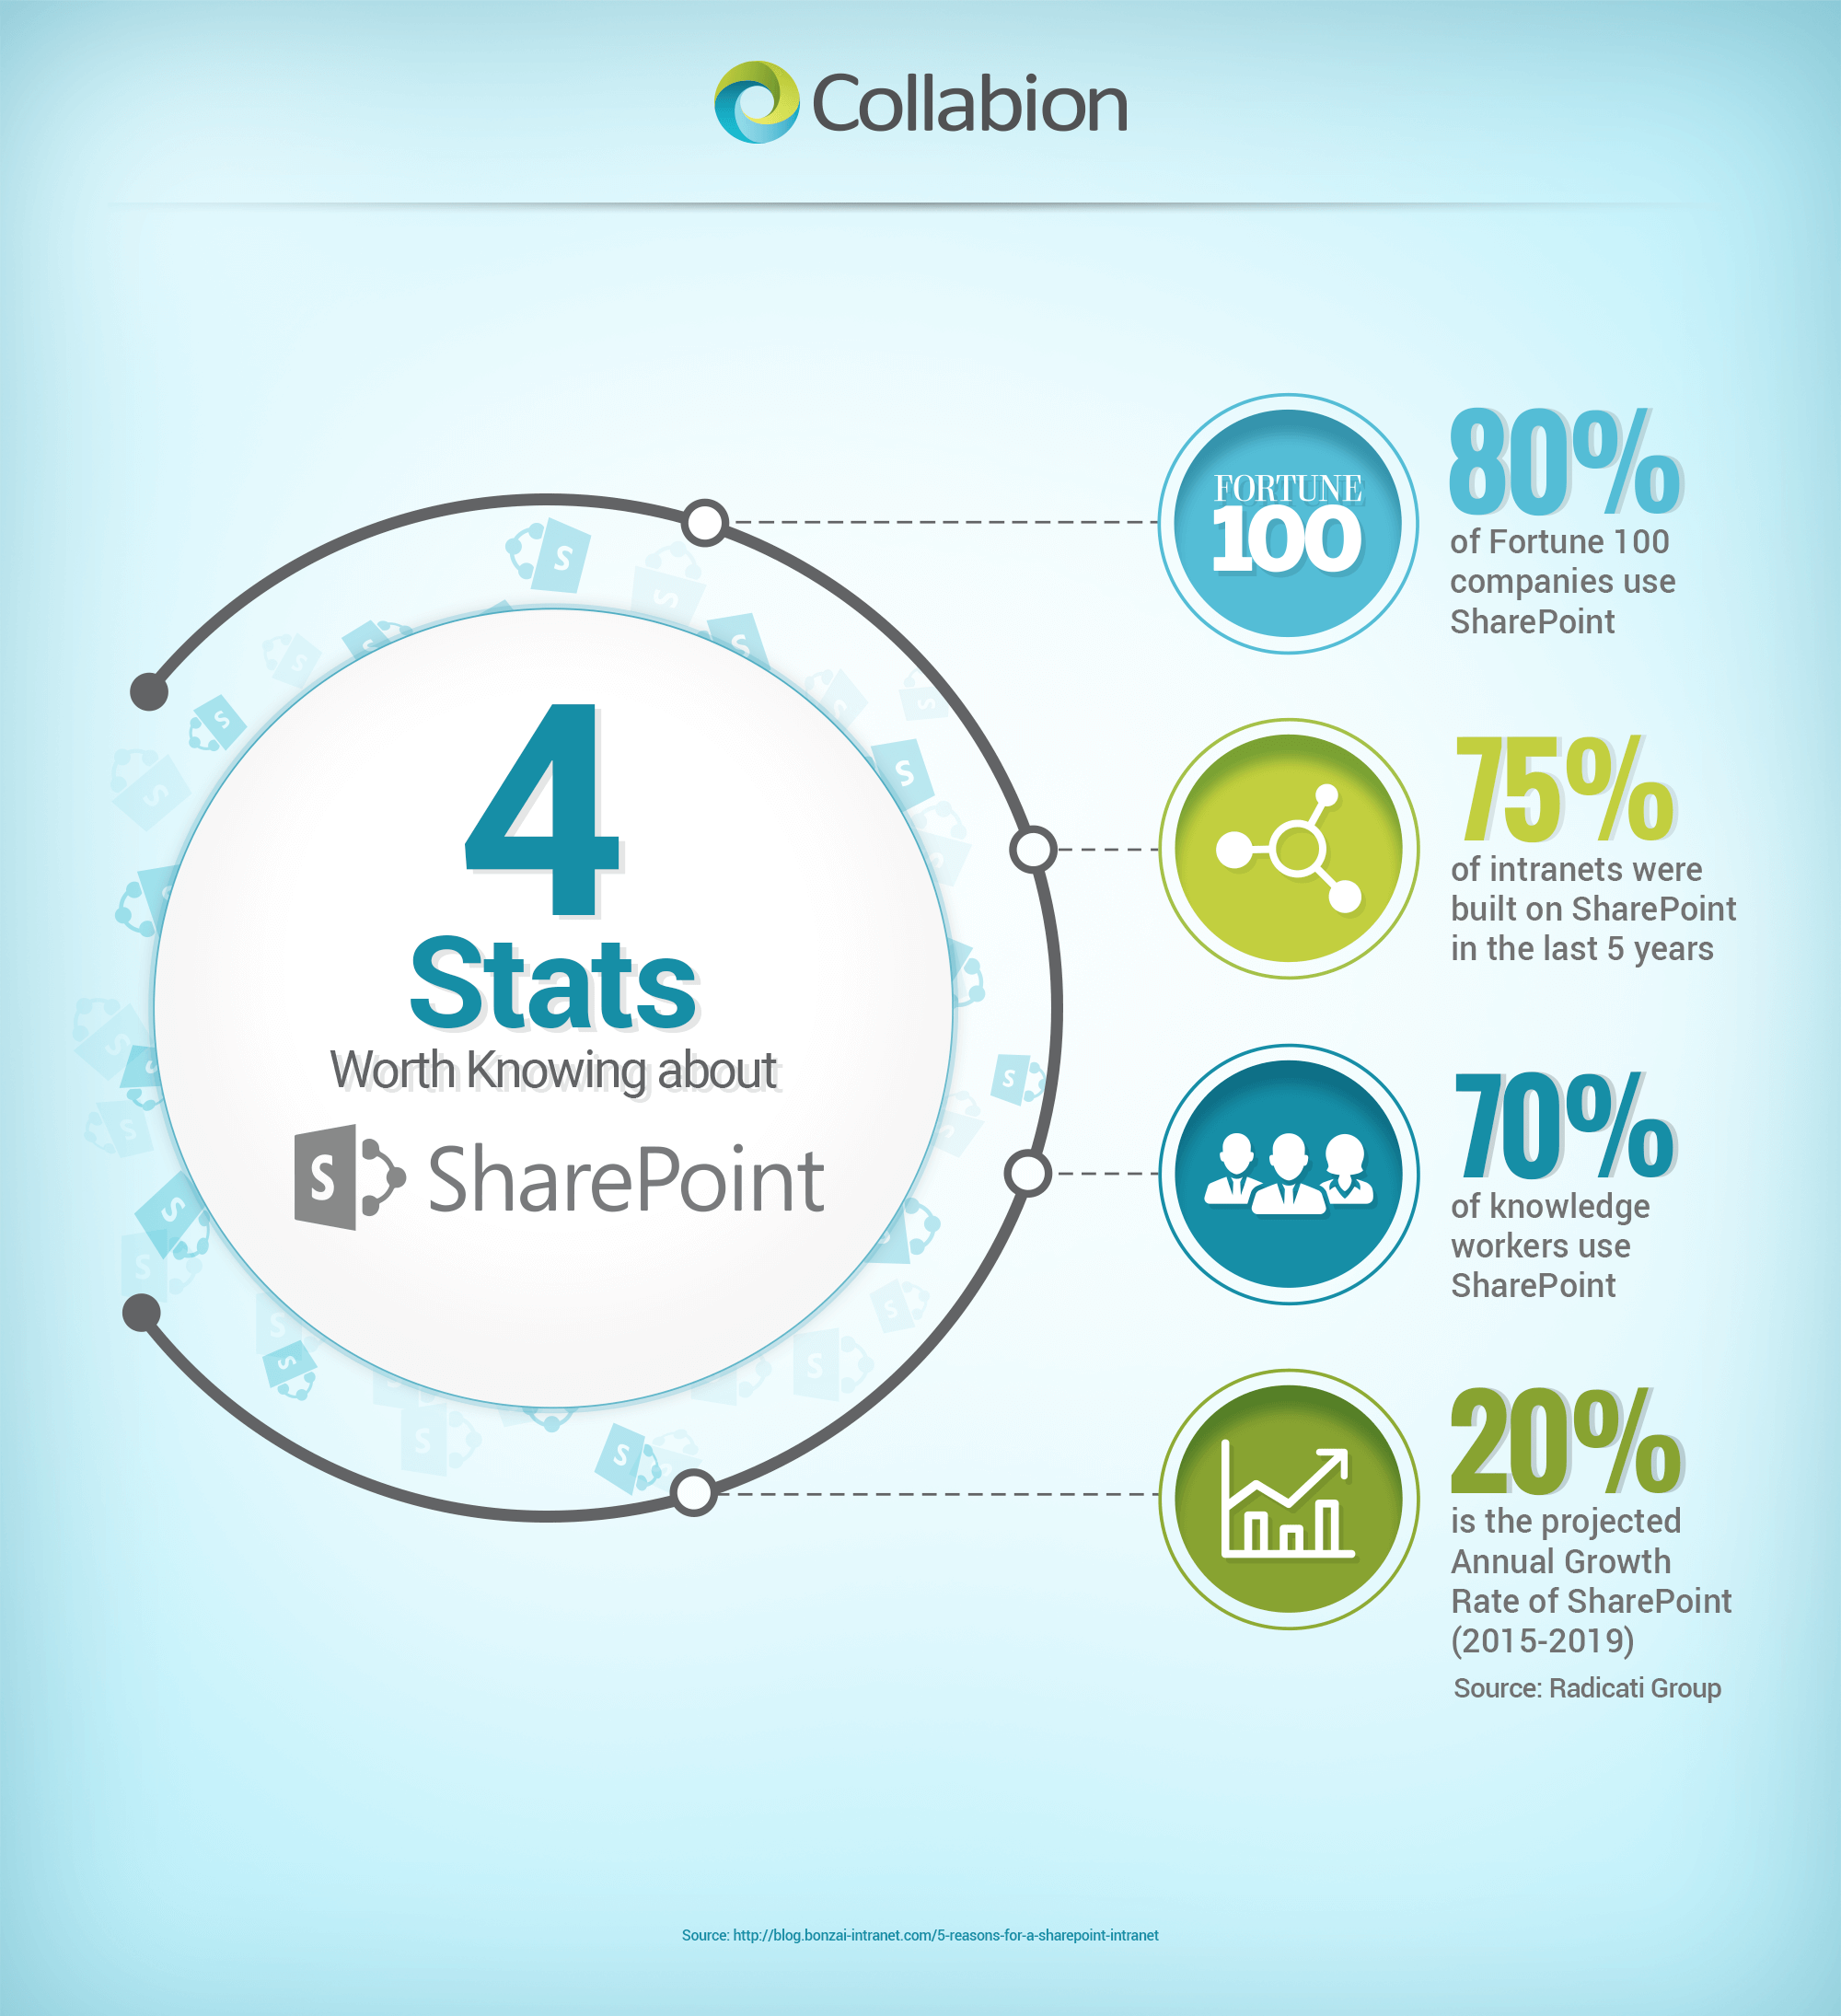 4 Stats Worth Knowing About SharePoint